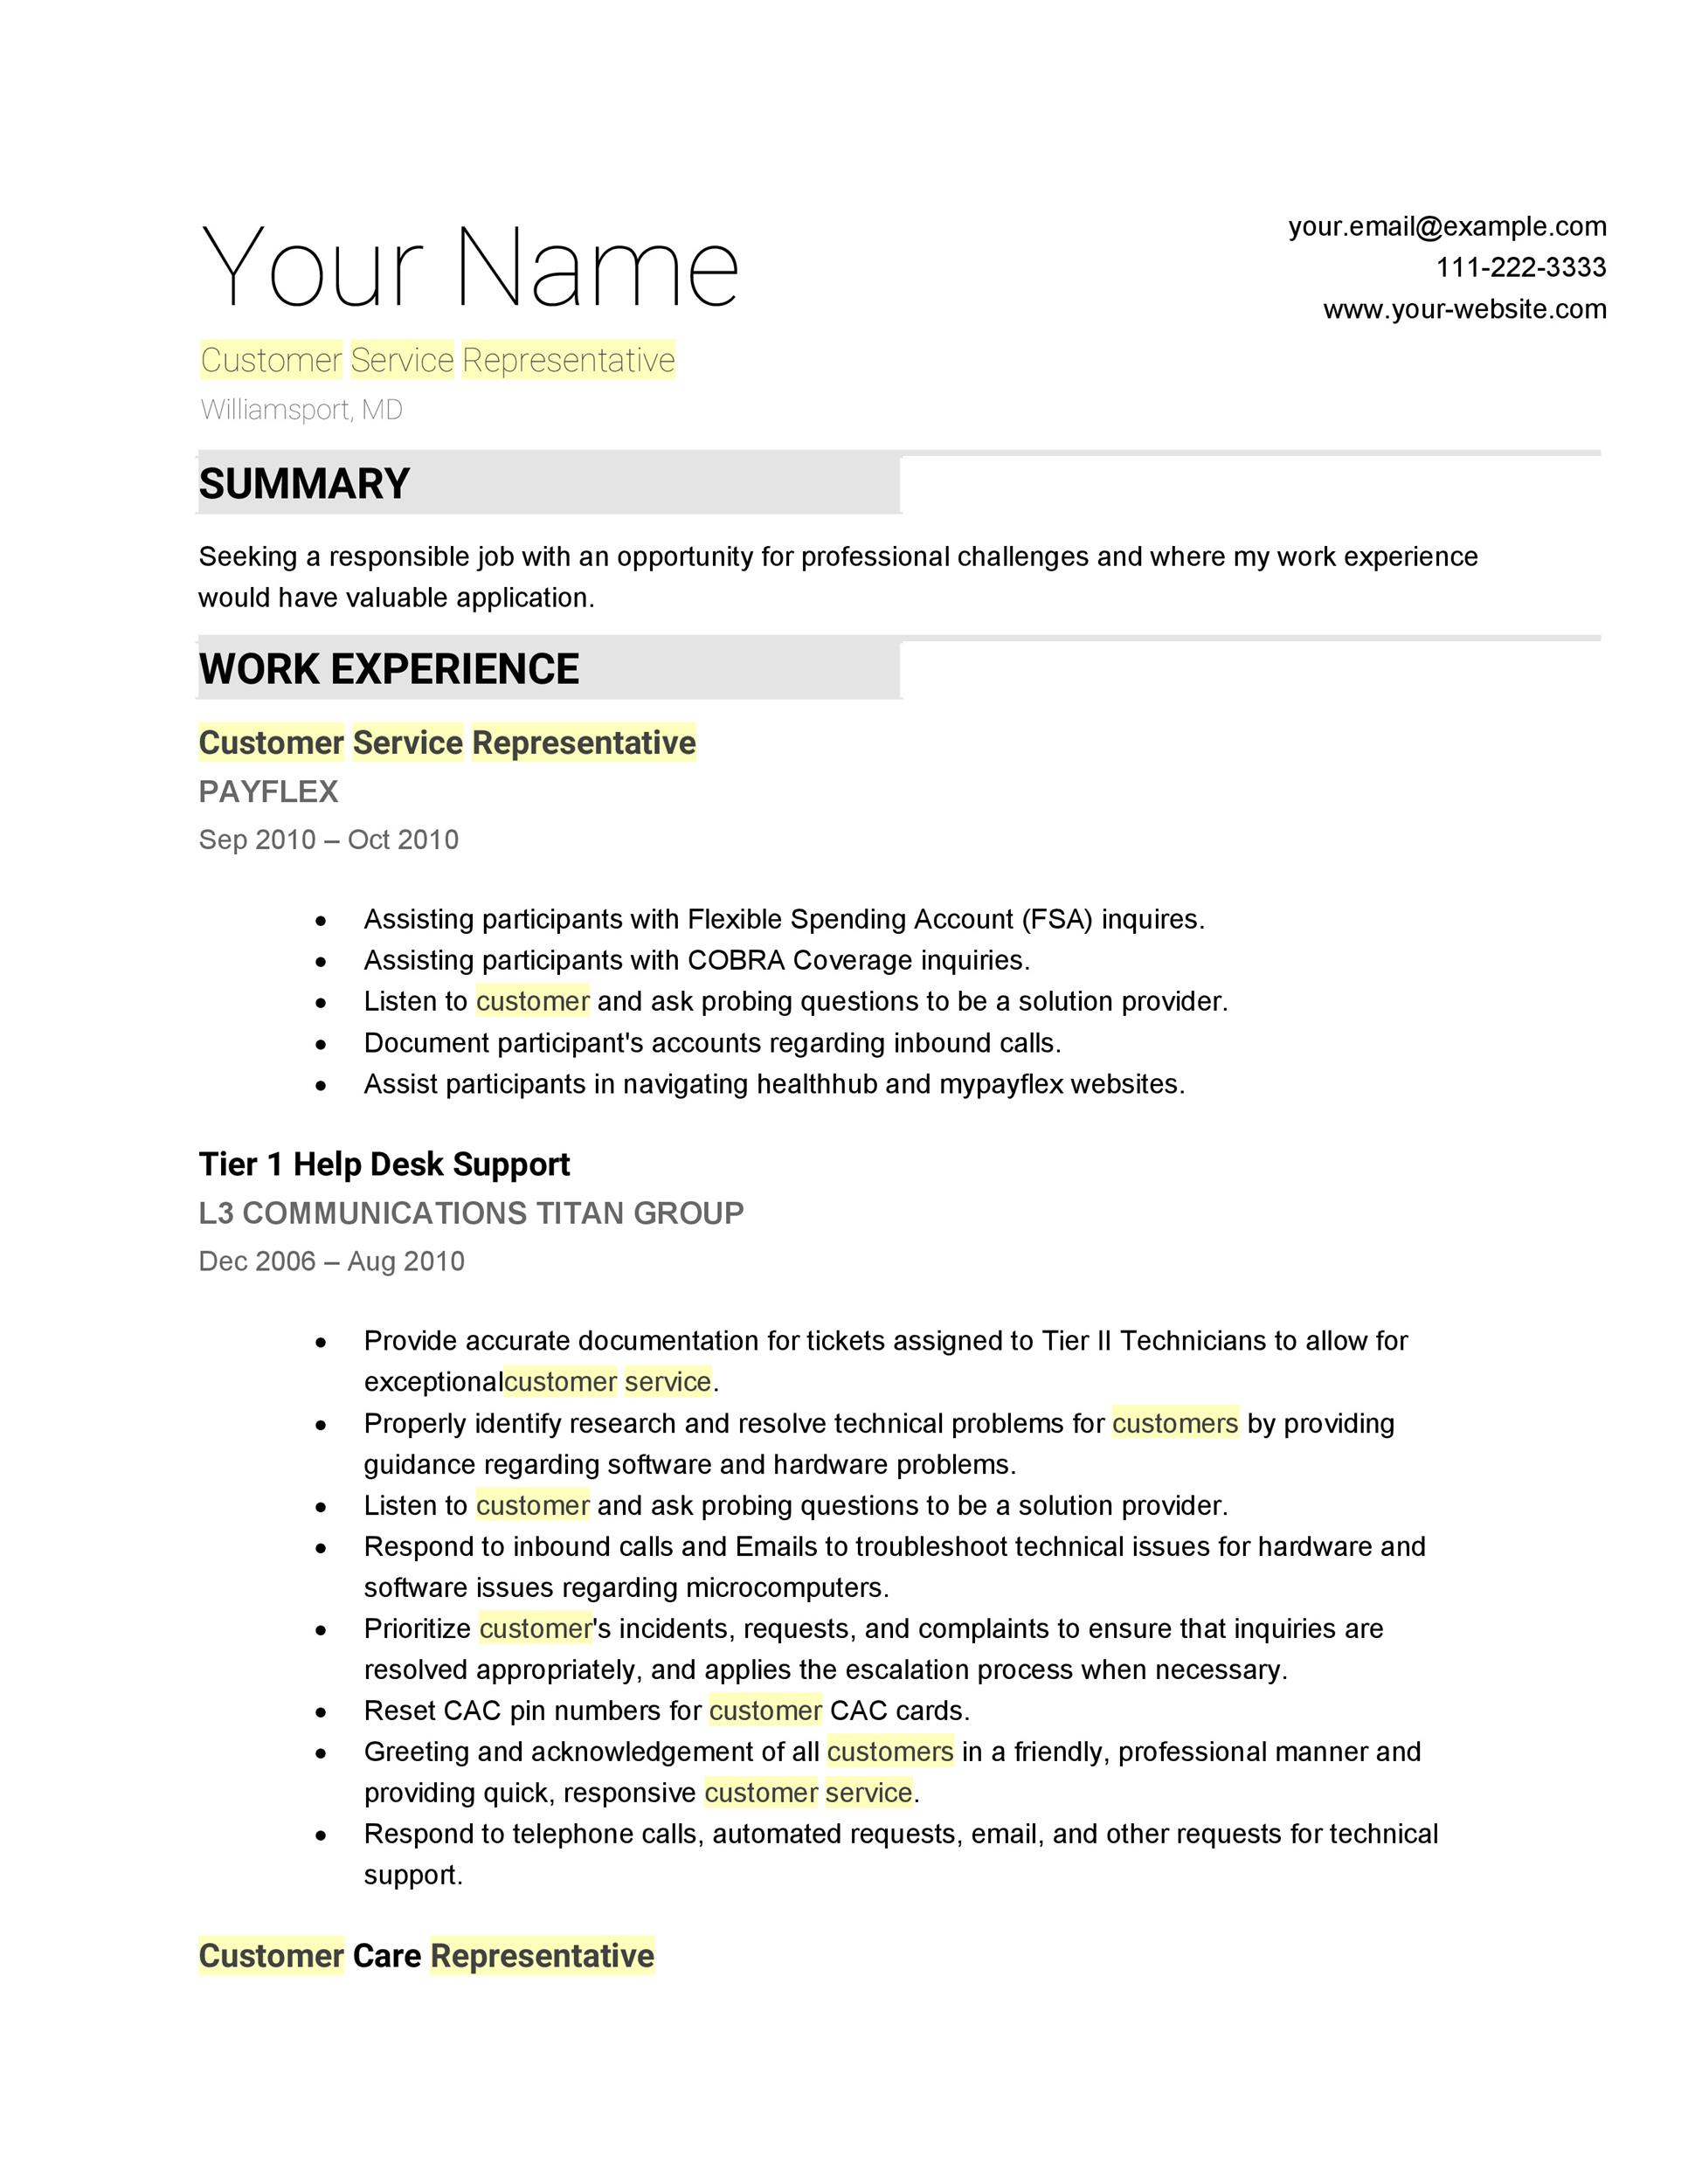 30 customer service resume examples template lab customer service resume templates spiritdancerdesigns